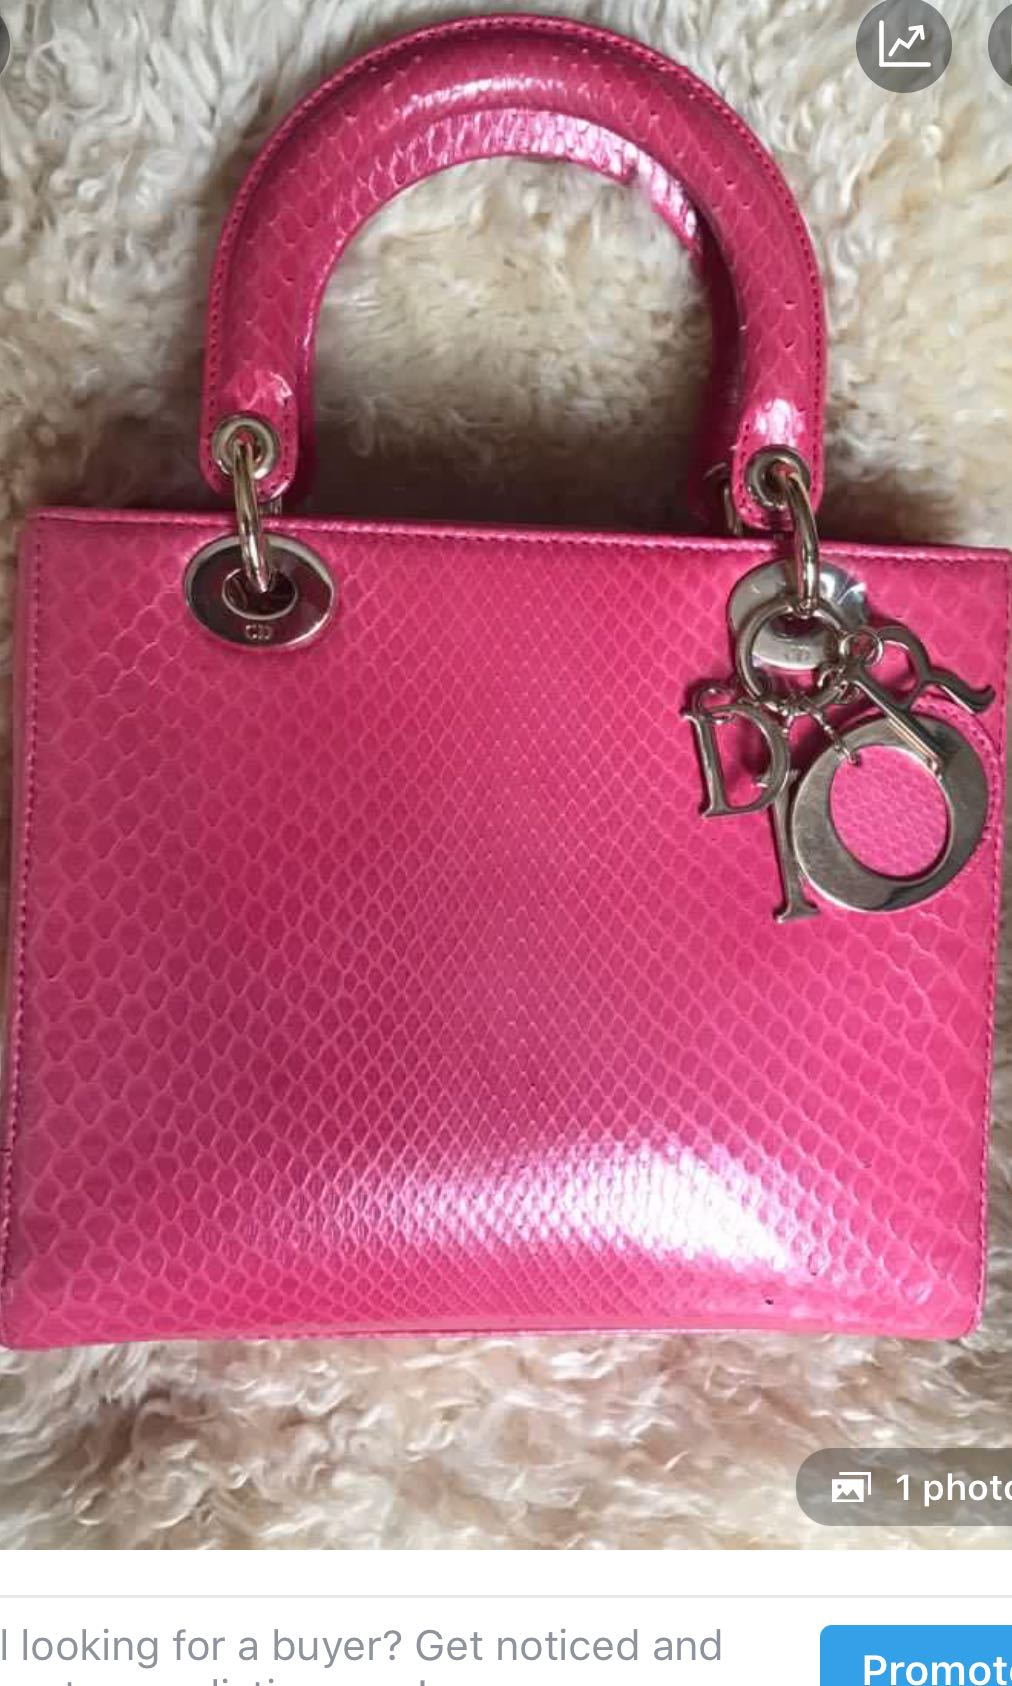 69b09d2d3f9 Christian Dior Pink Lady Dior bag at $5K only, Luxury, Bags ...